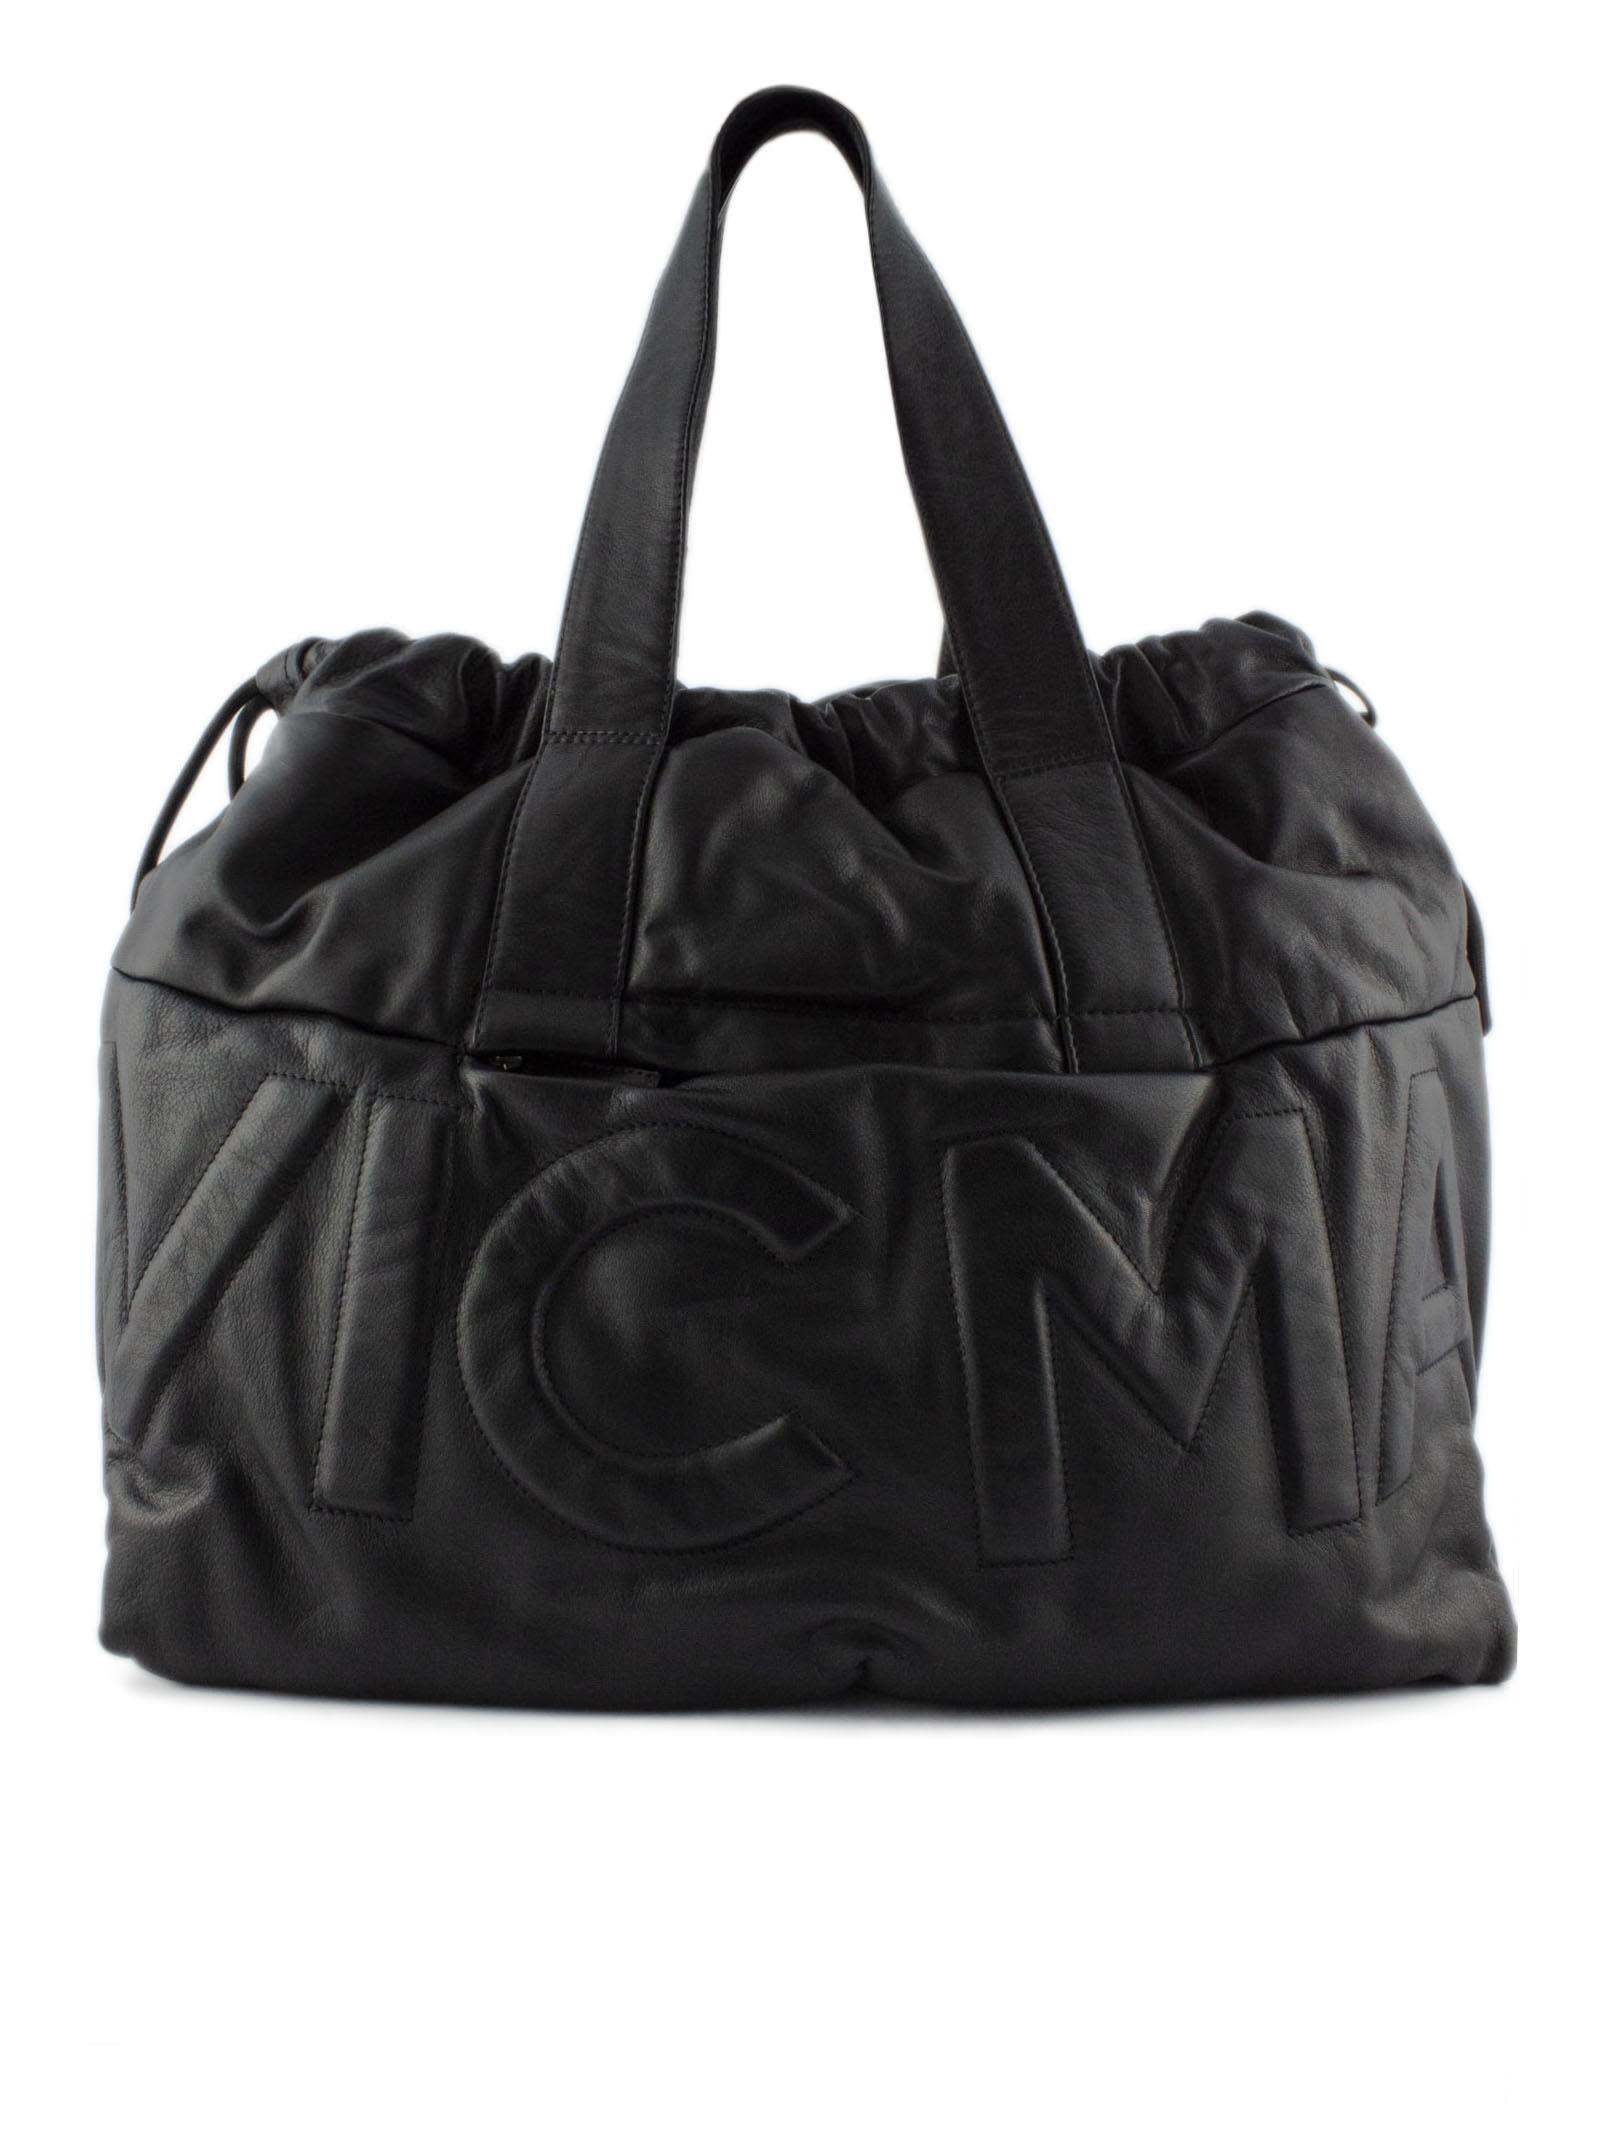 VIC MATIE Shopping Bag In Soft Black Leather. in Nero